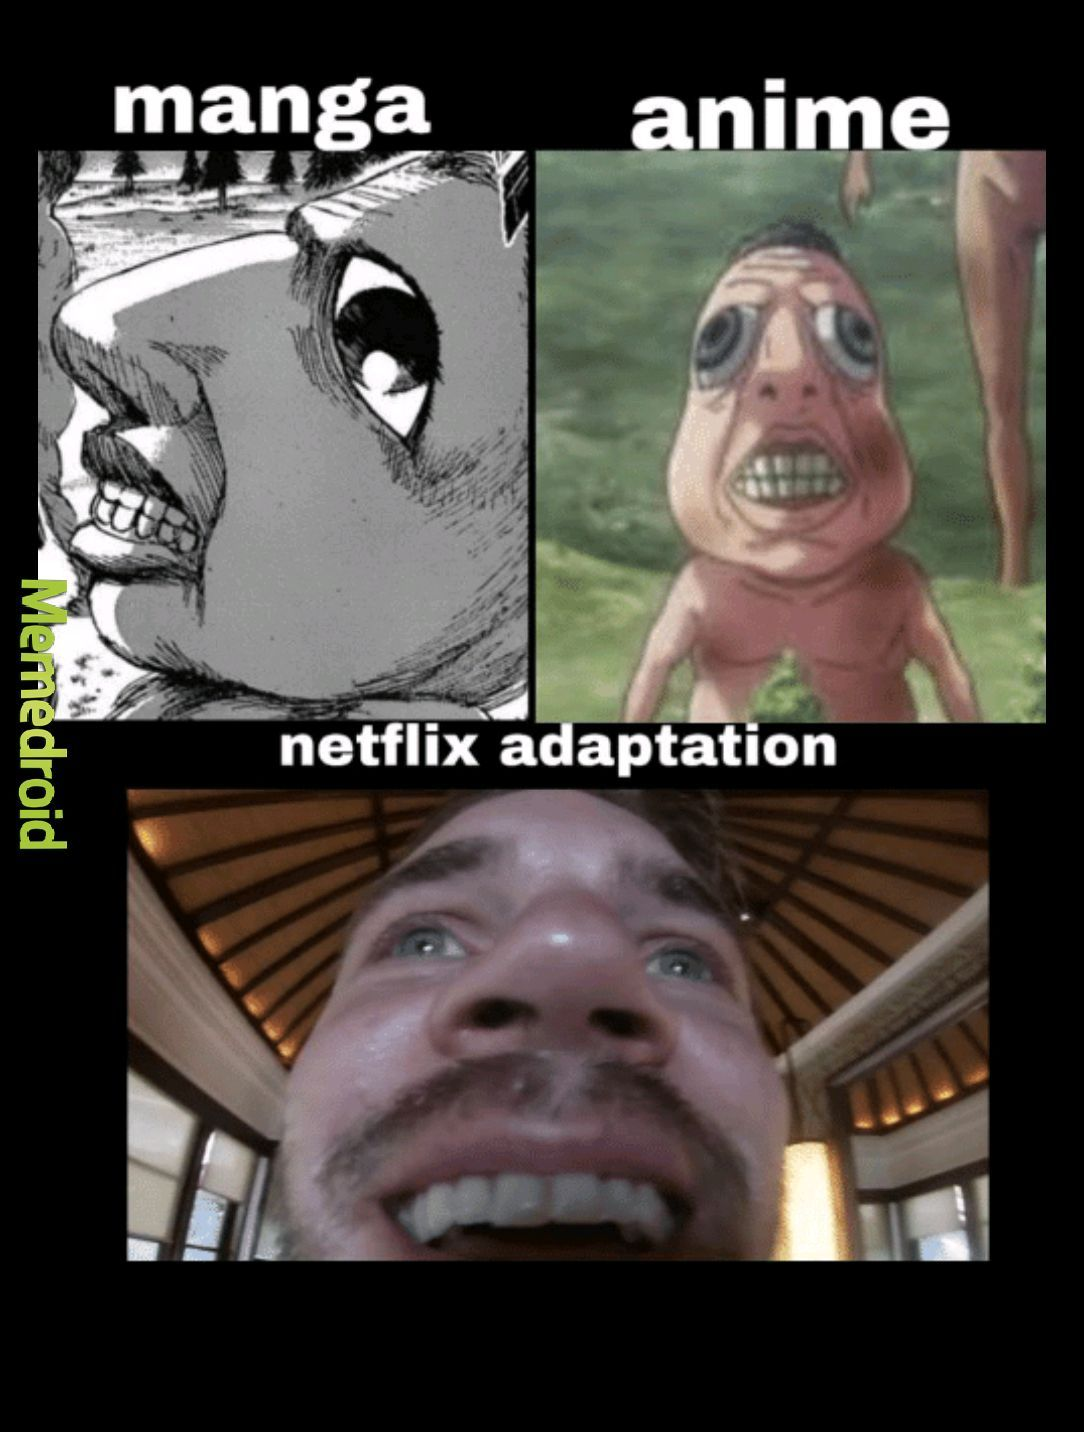 Attack on titans netflix - meme